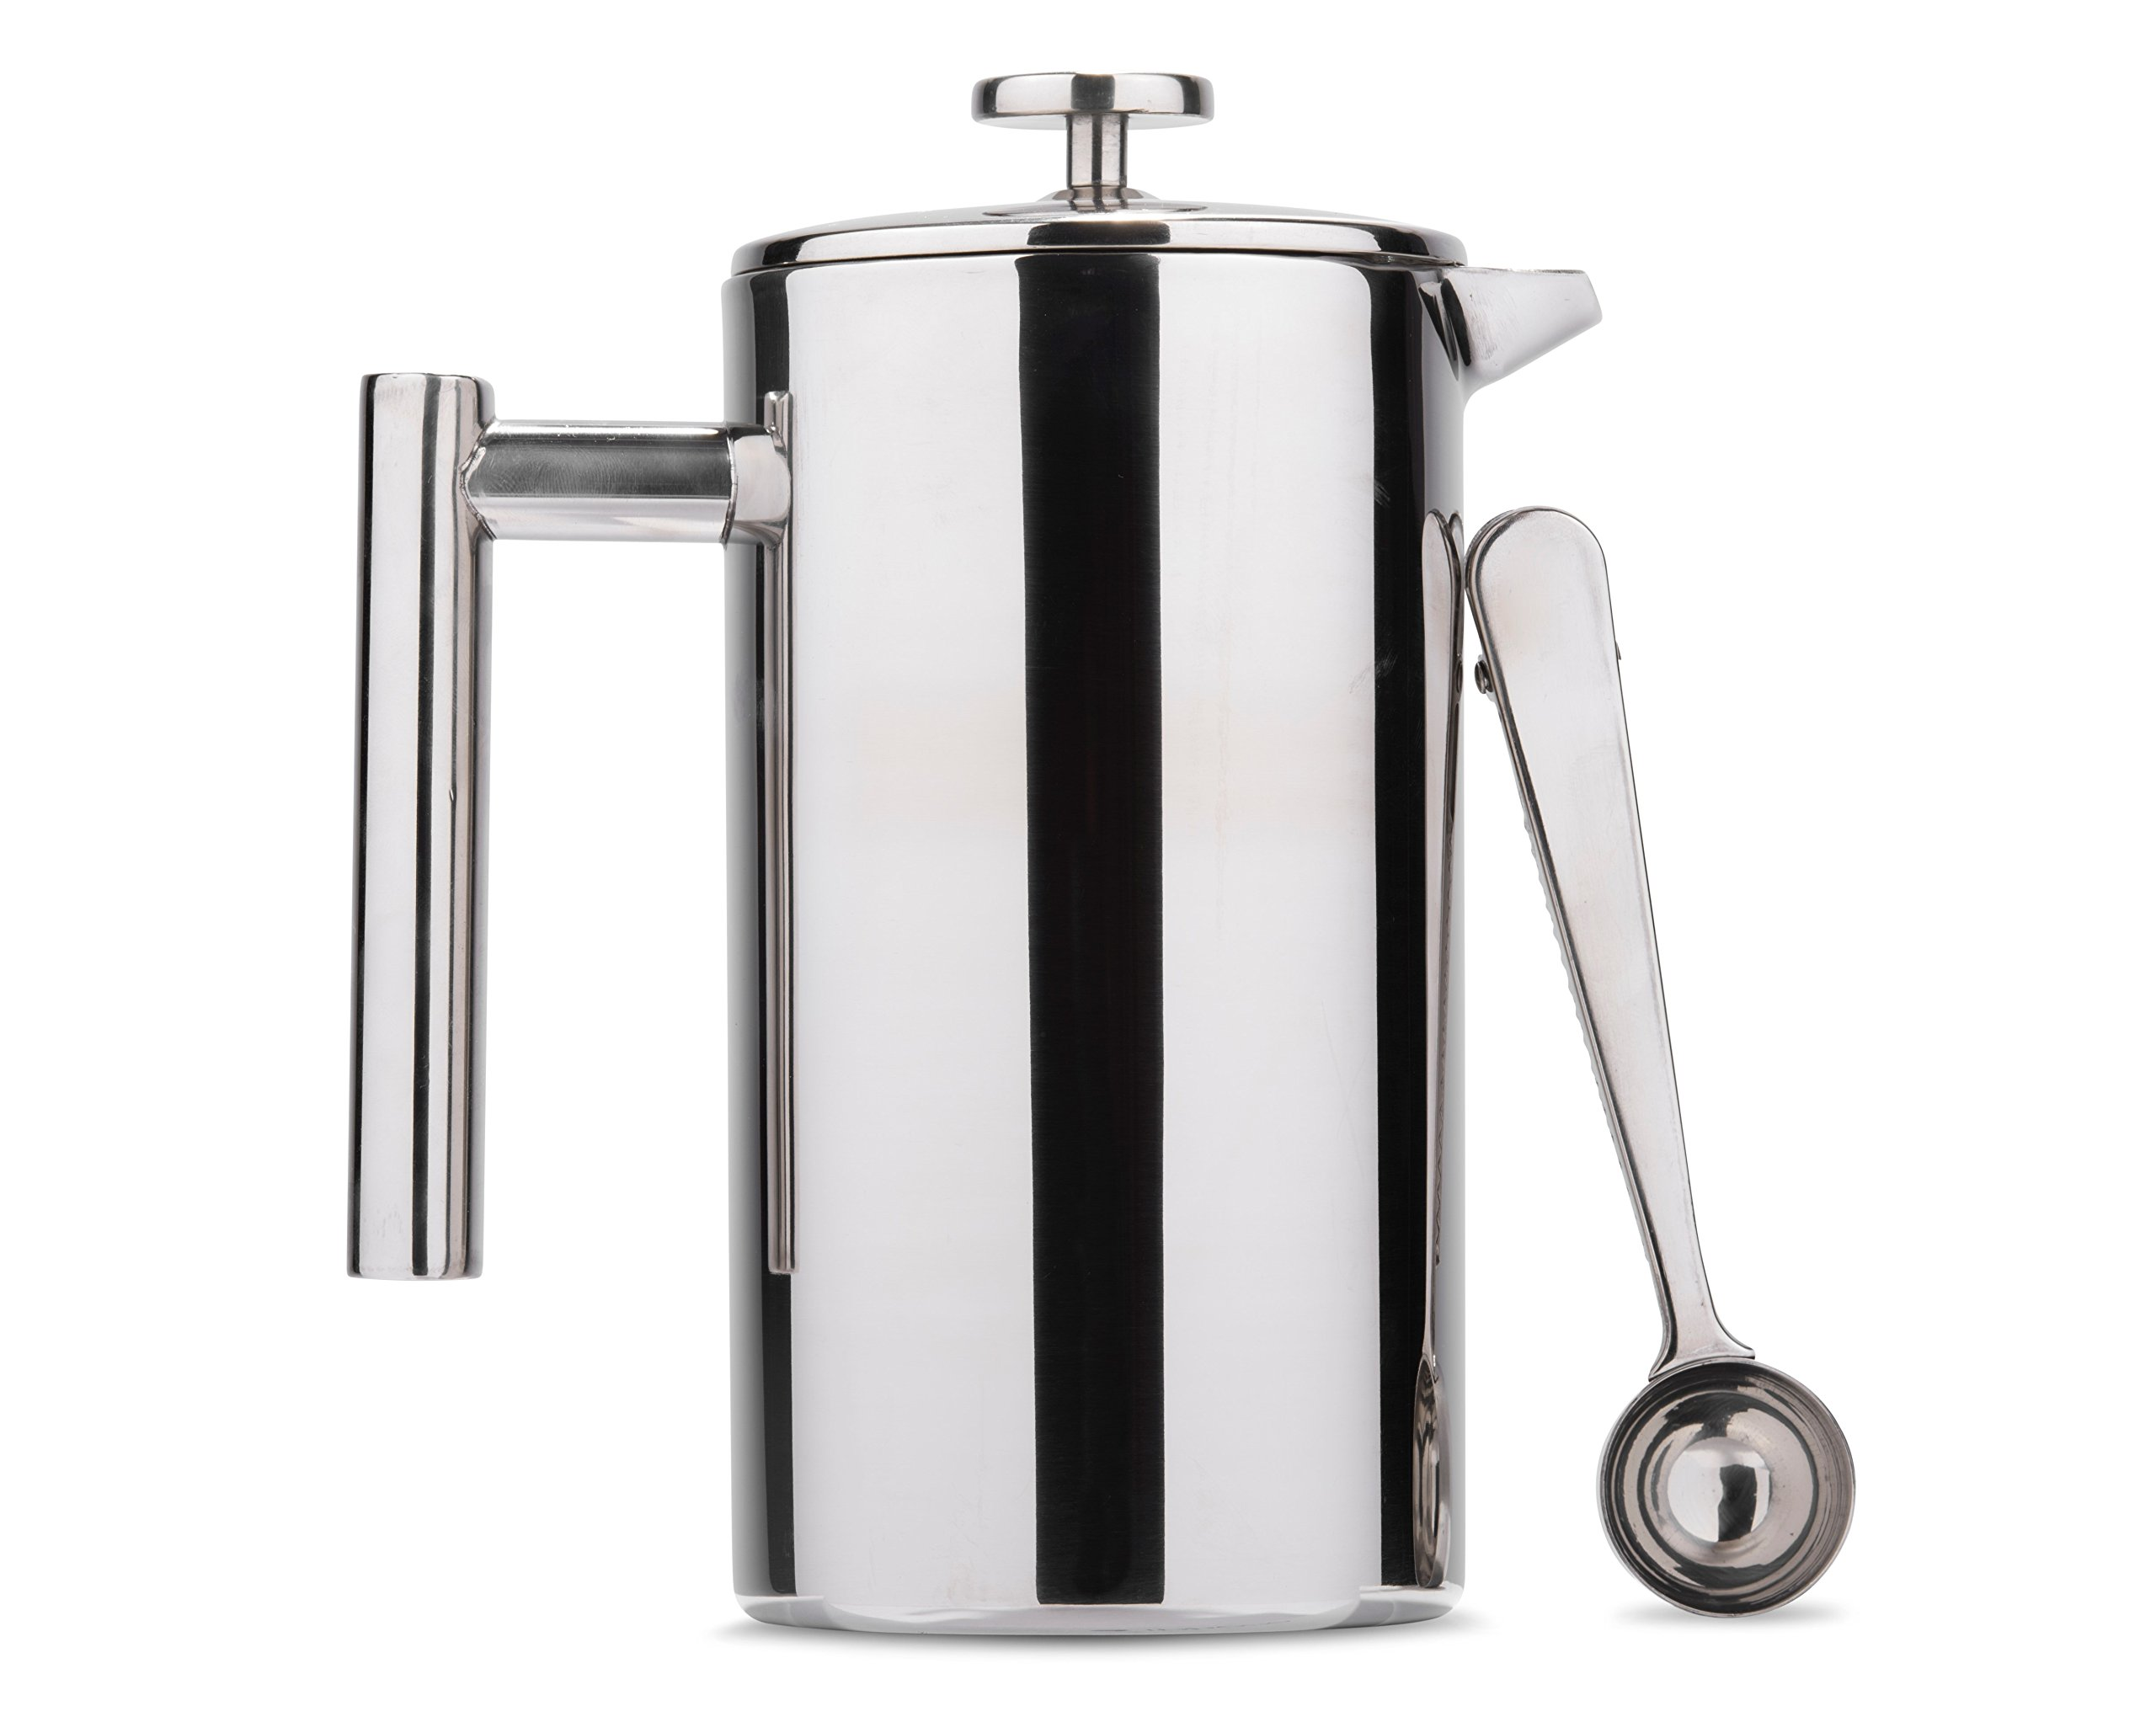 Es Perto Stainless Steel French Press Coffee Maker | 34 Ounce, Double Wall Insulated, Manual, Portable, Chrome Finish